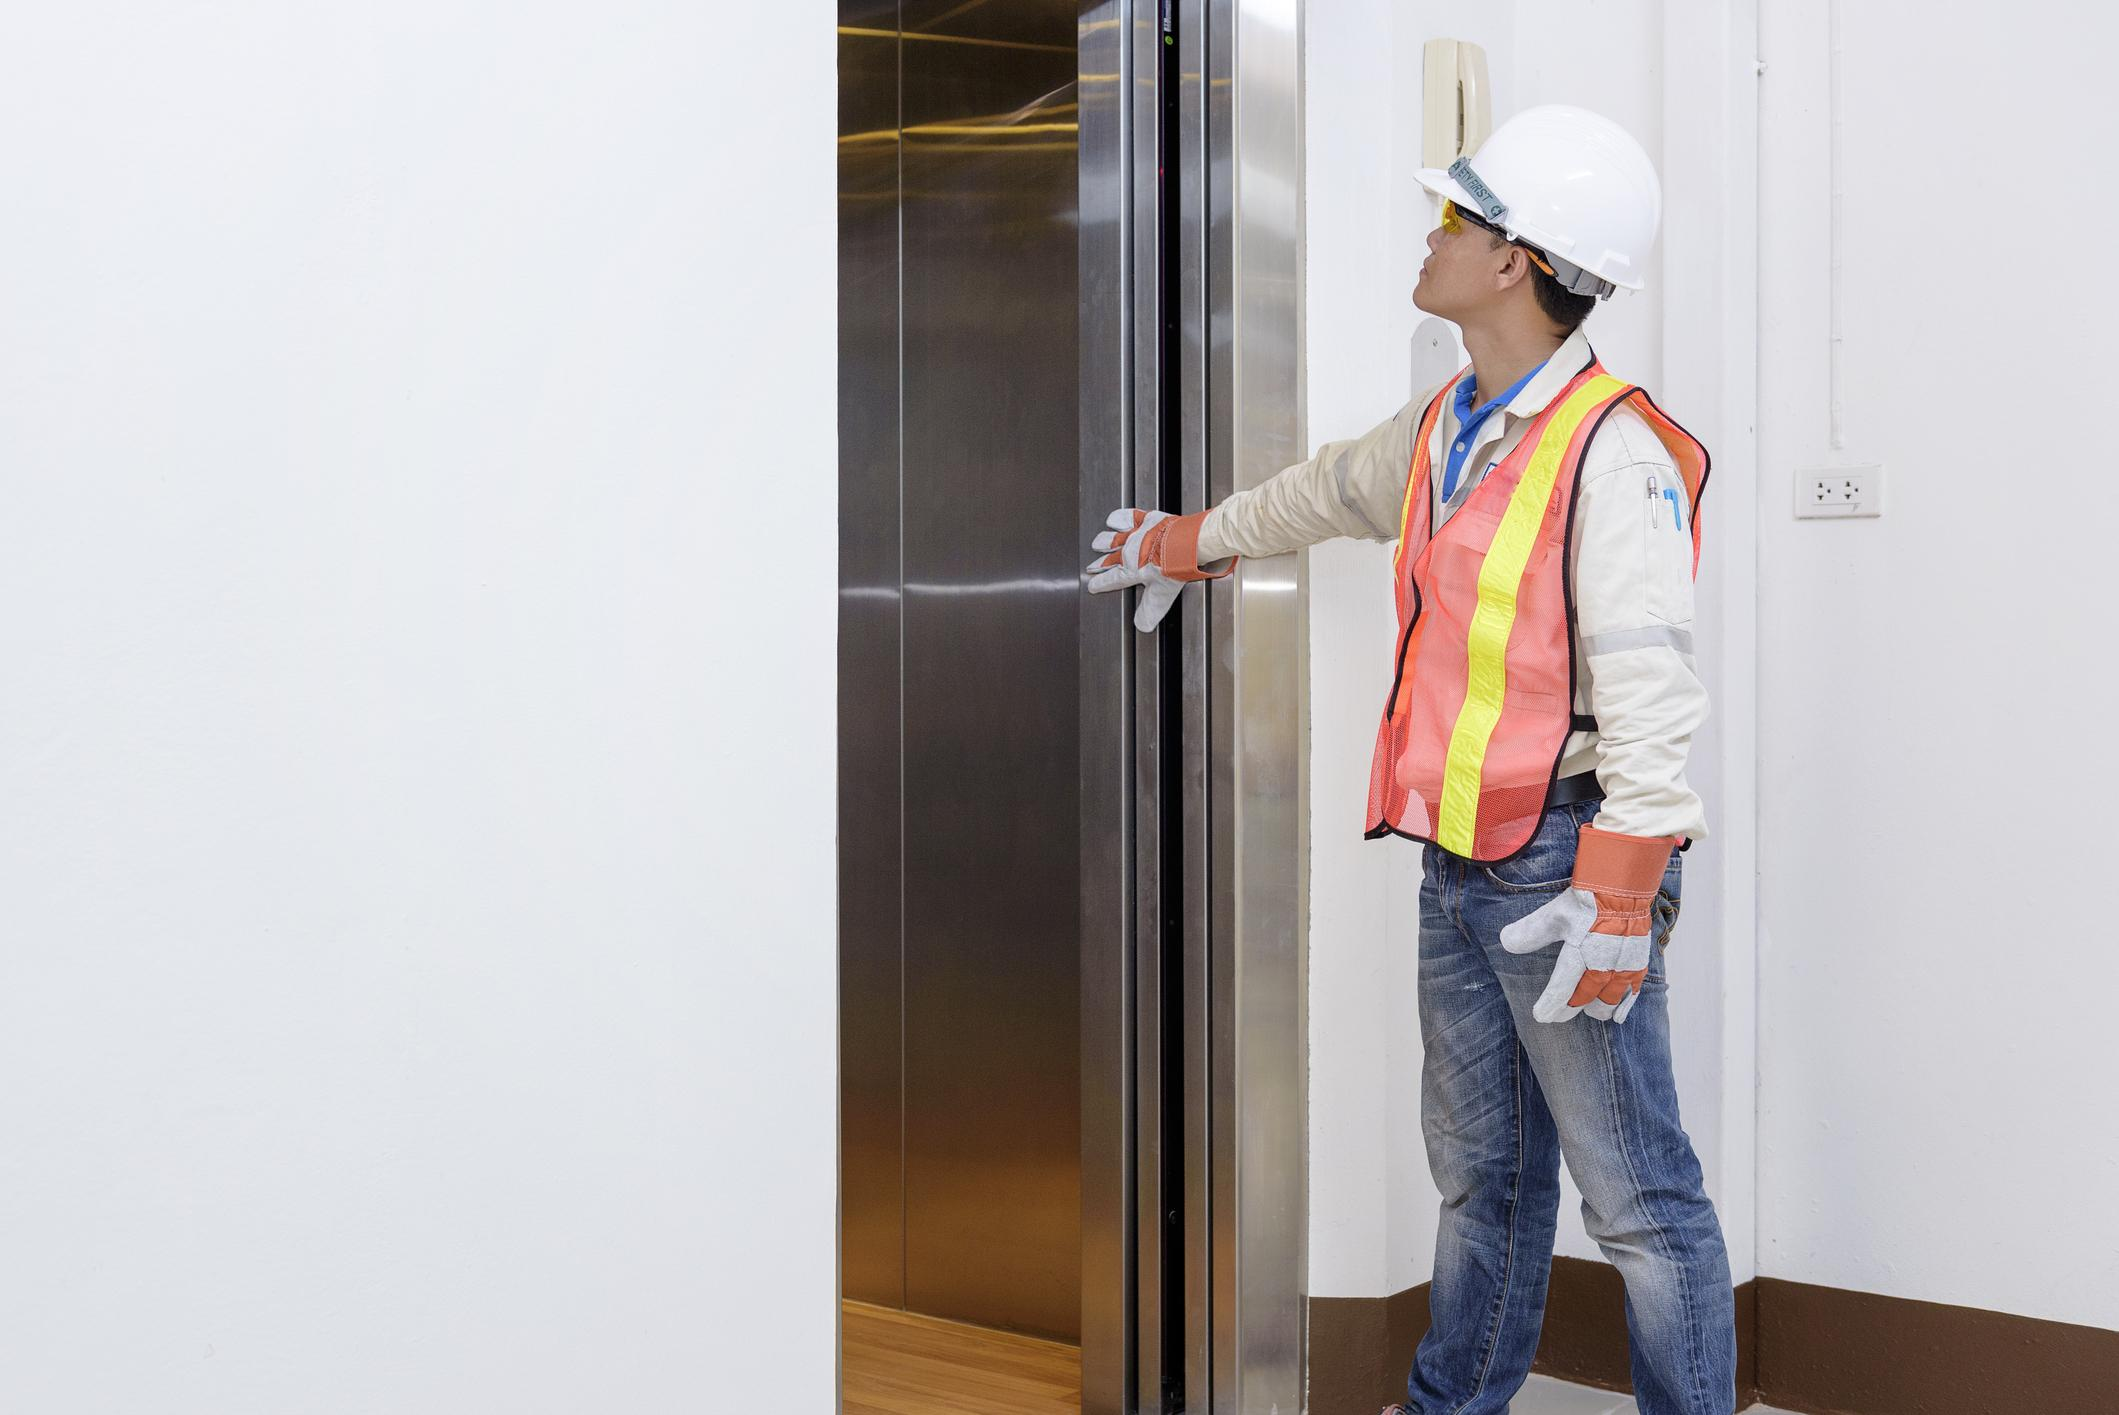 Man pinned, killed in New York City elevator accident